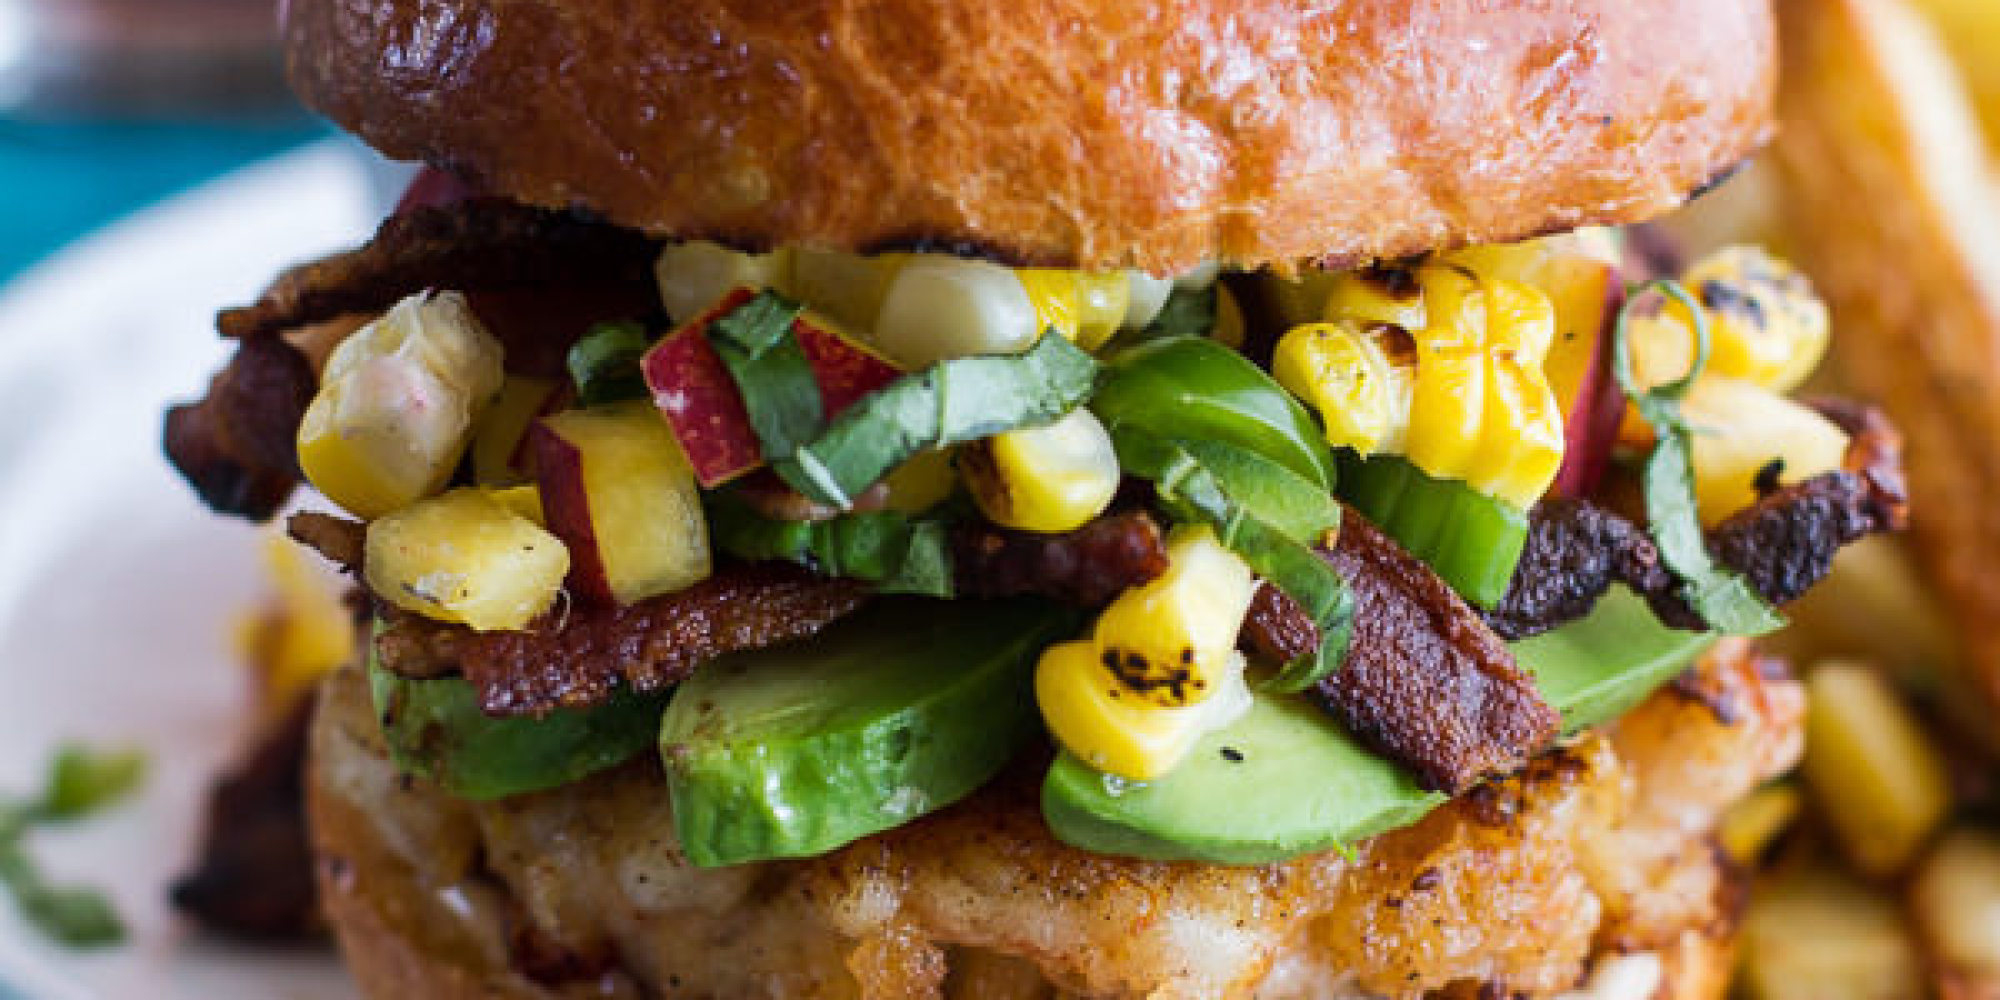 Fish and seafood burger recipes you should make for dinner for Fish burger recipe